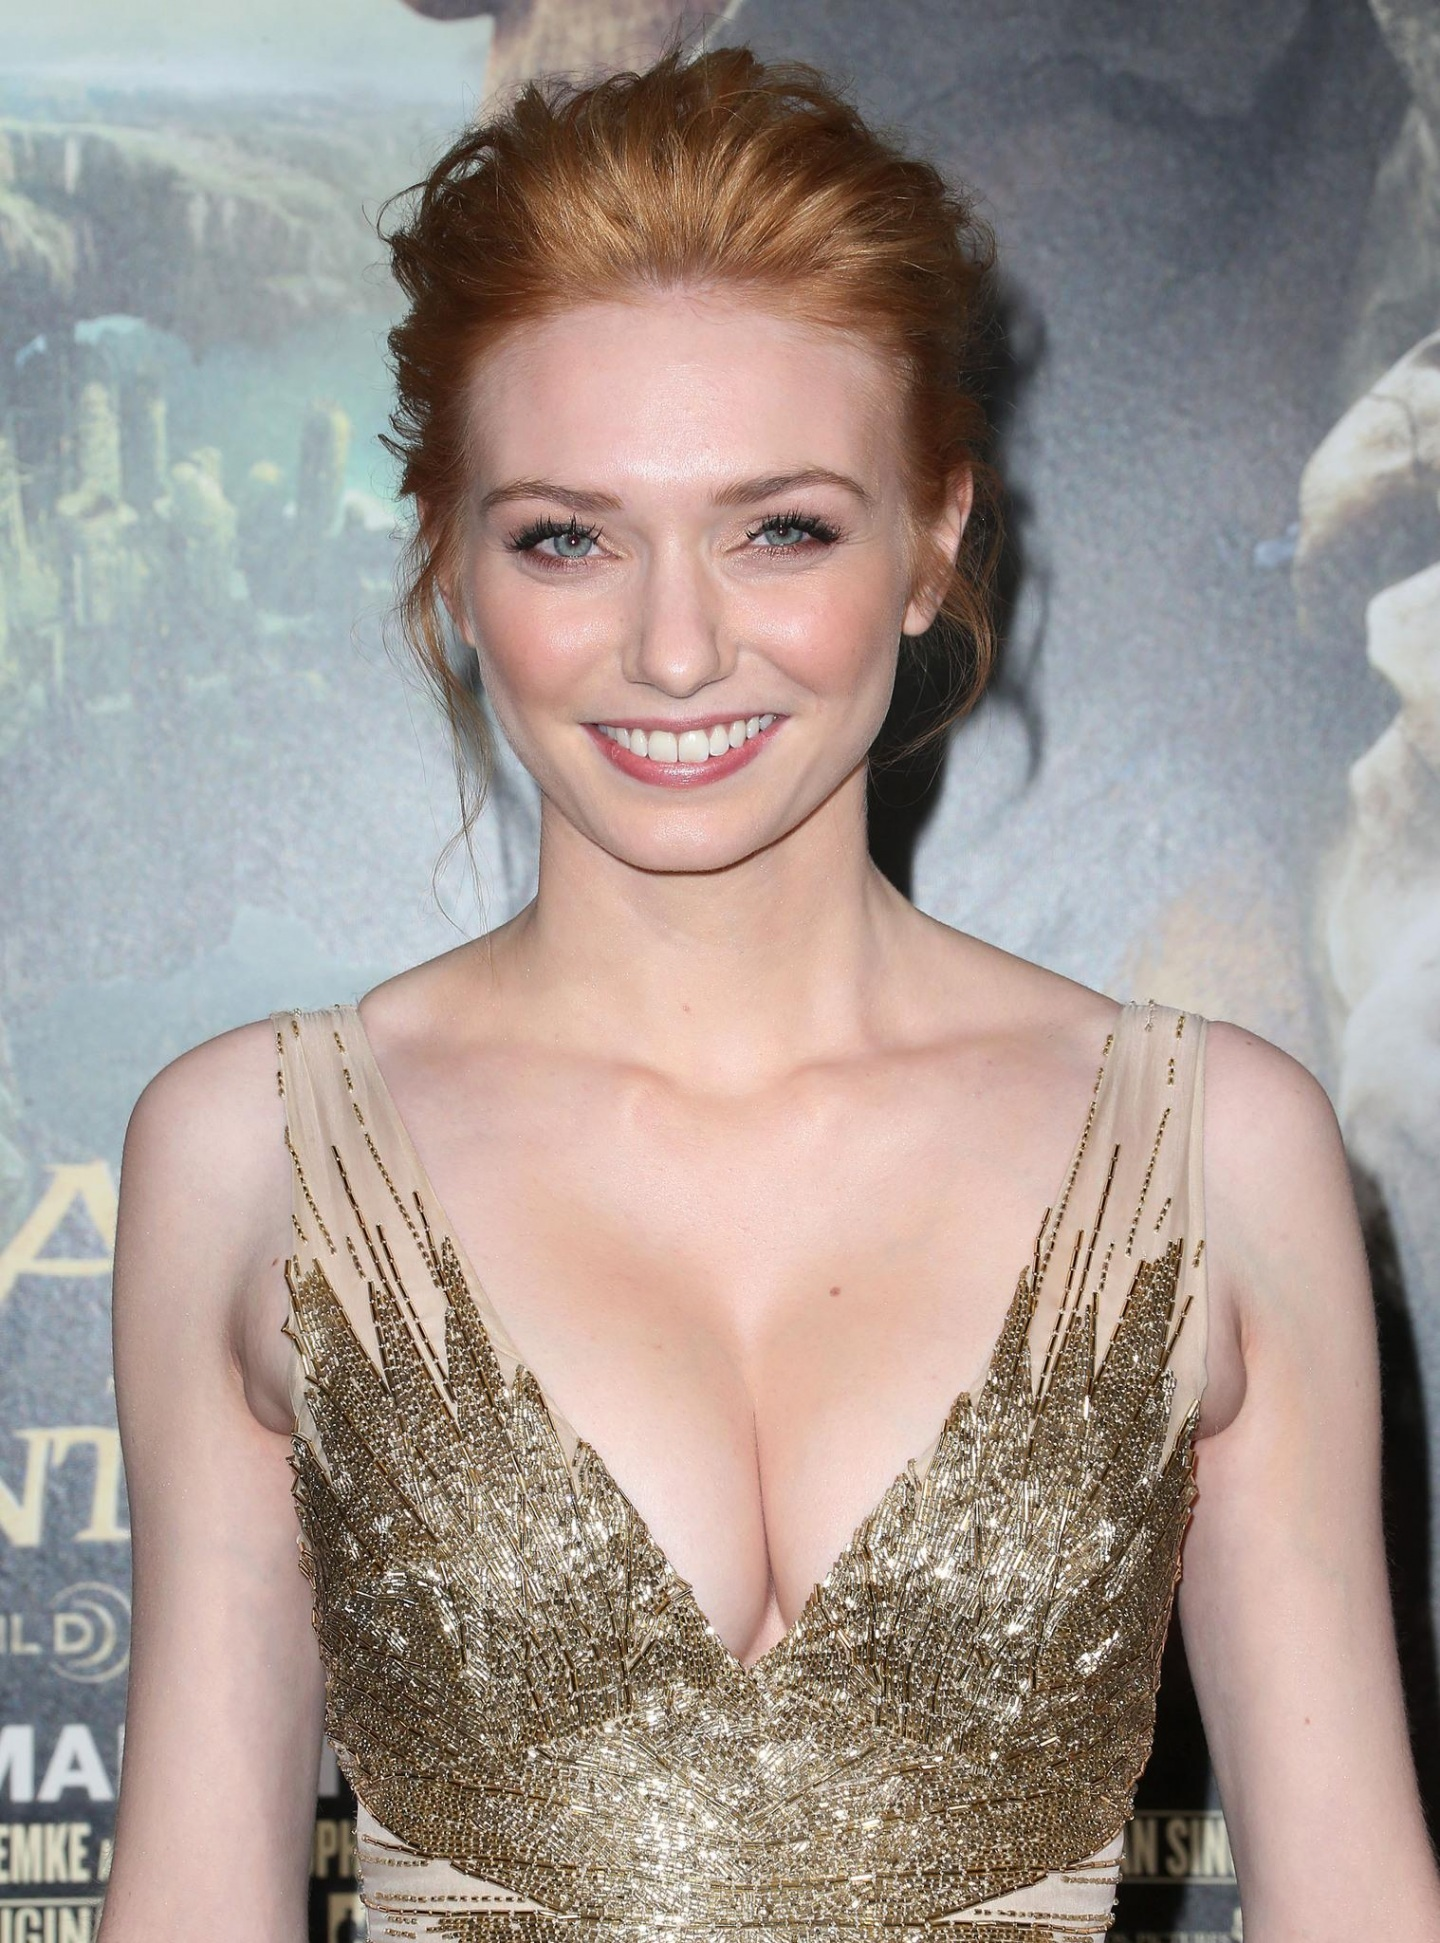 Bikini Eleanor Tomlinson naked (75 foto and video), Pussy, Hot, Instagram, lingerie 2006